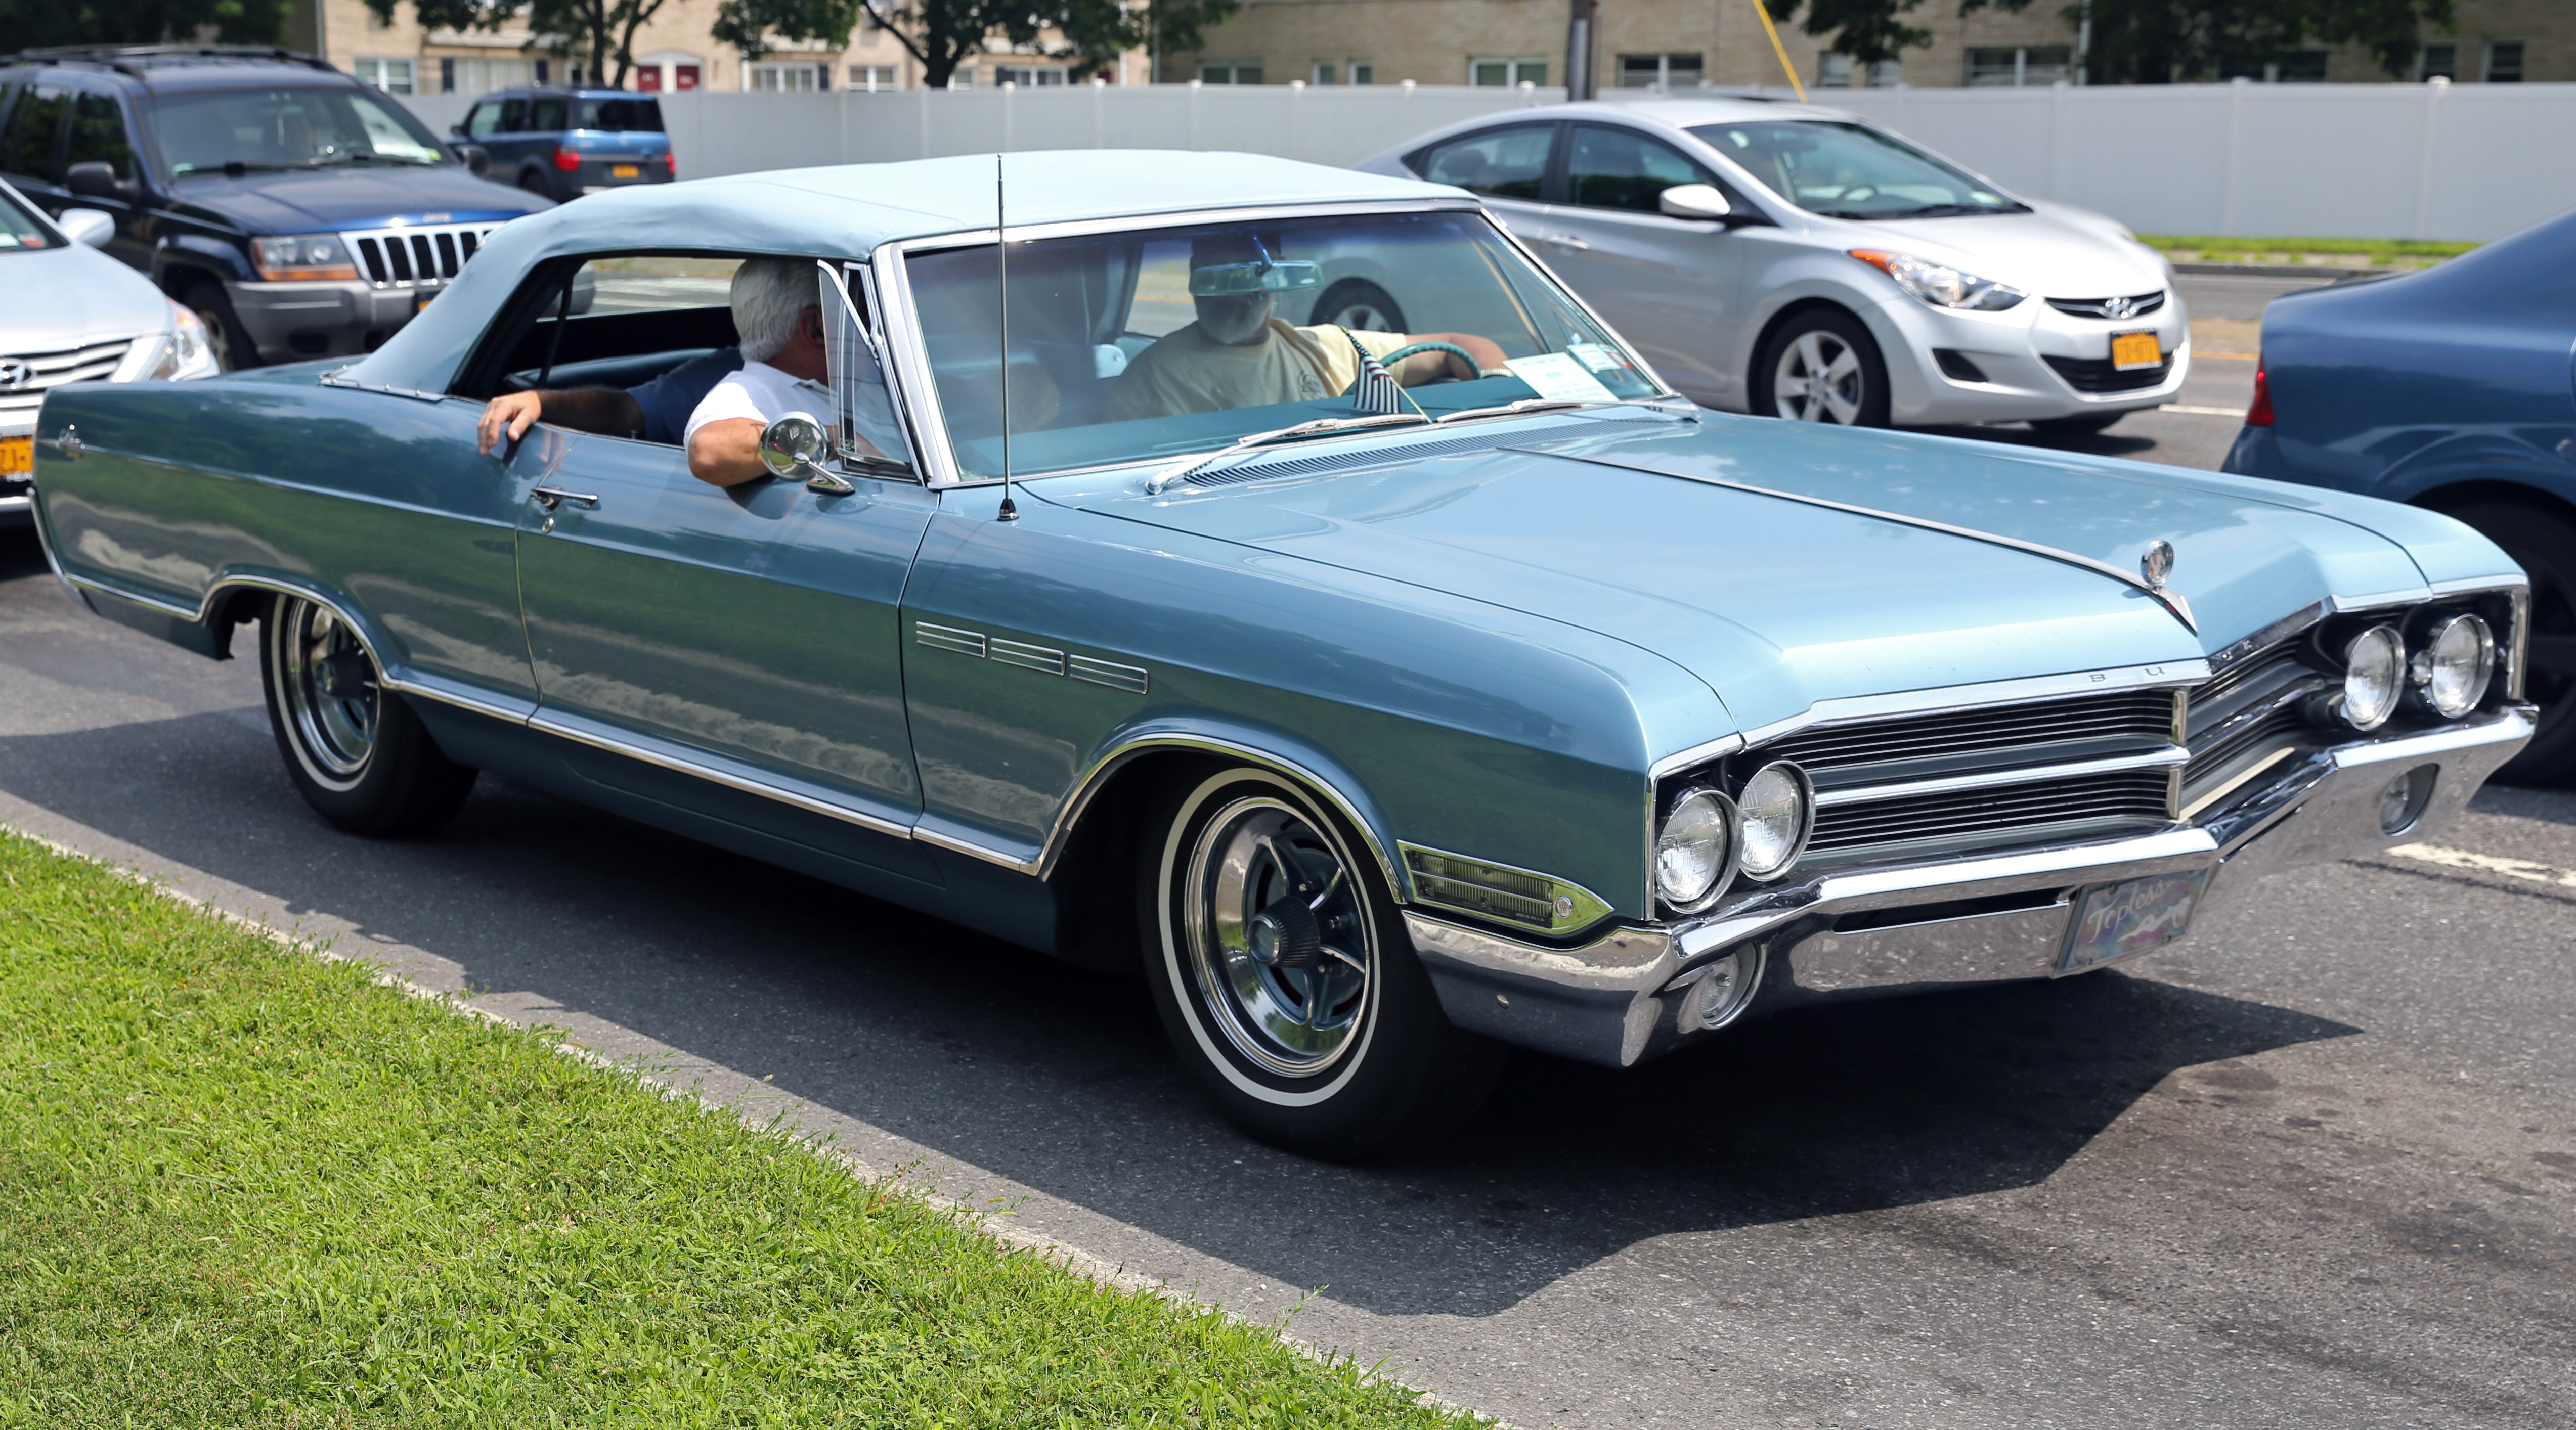 File:1965 Buick LeSabre convertible in blue, front right ...